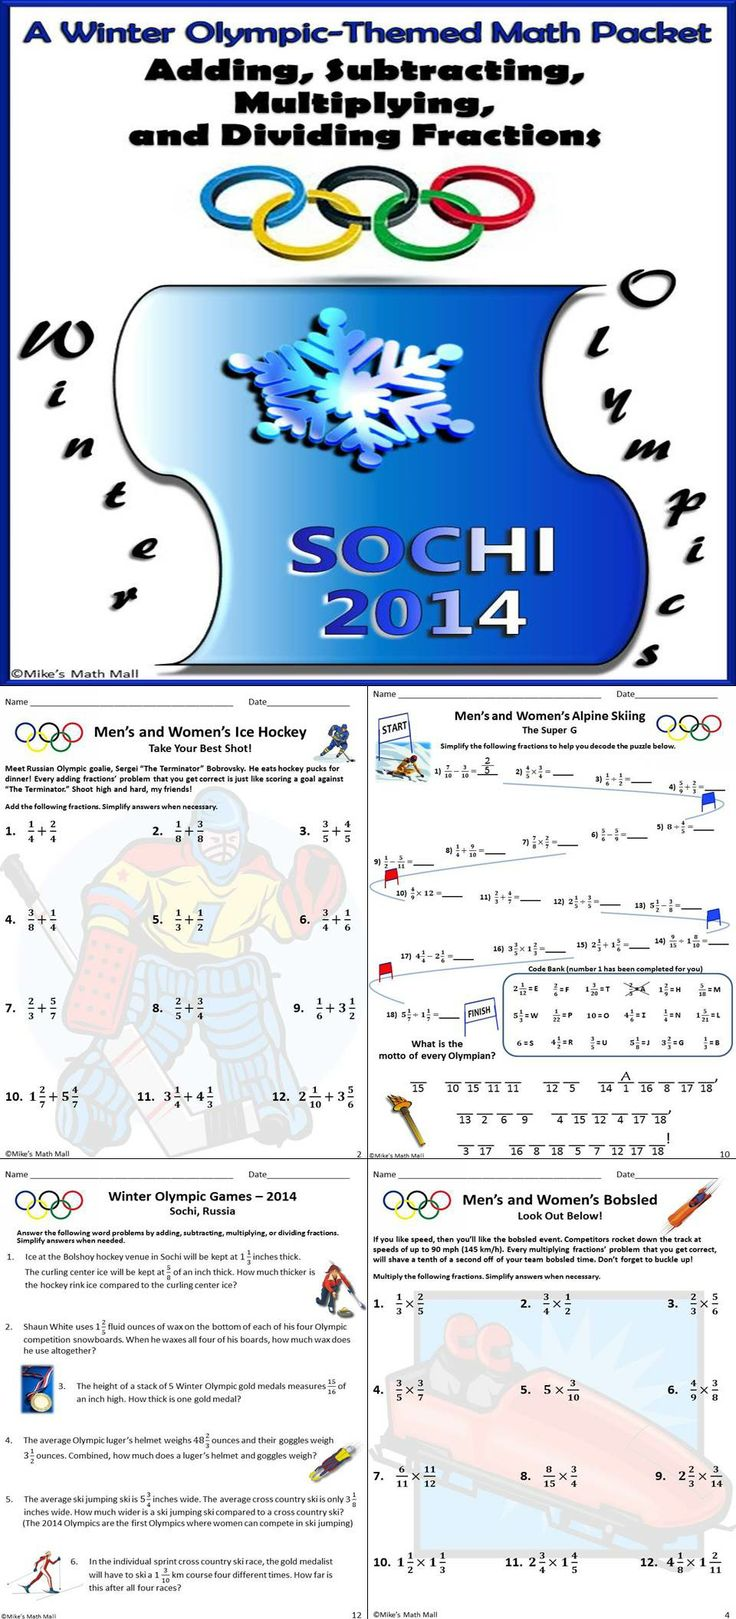 "This is a Winter Olympic-themed ""operations with fractions"" packet. The packet includes adding, subtracting, multiplying, and dividing fractions with a fun coded puzzle and a page of word problems full of interesting Sochi Olympic facts. Your kids will love this review pack! Mike's Math Mall - $"